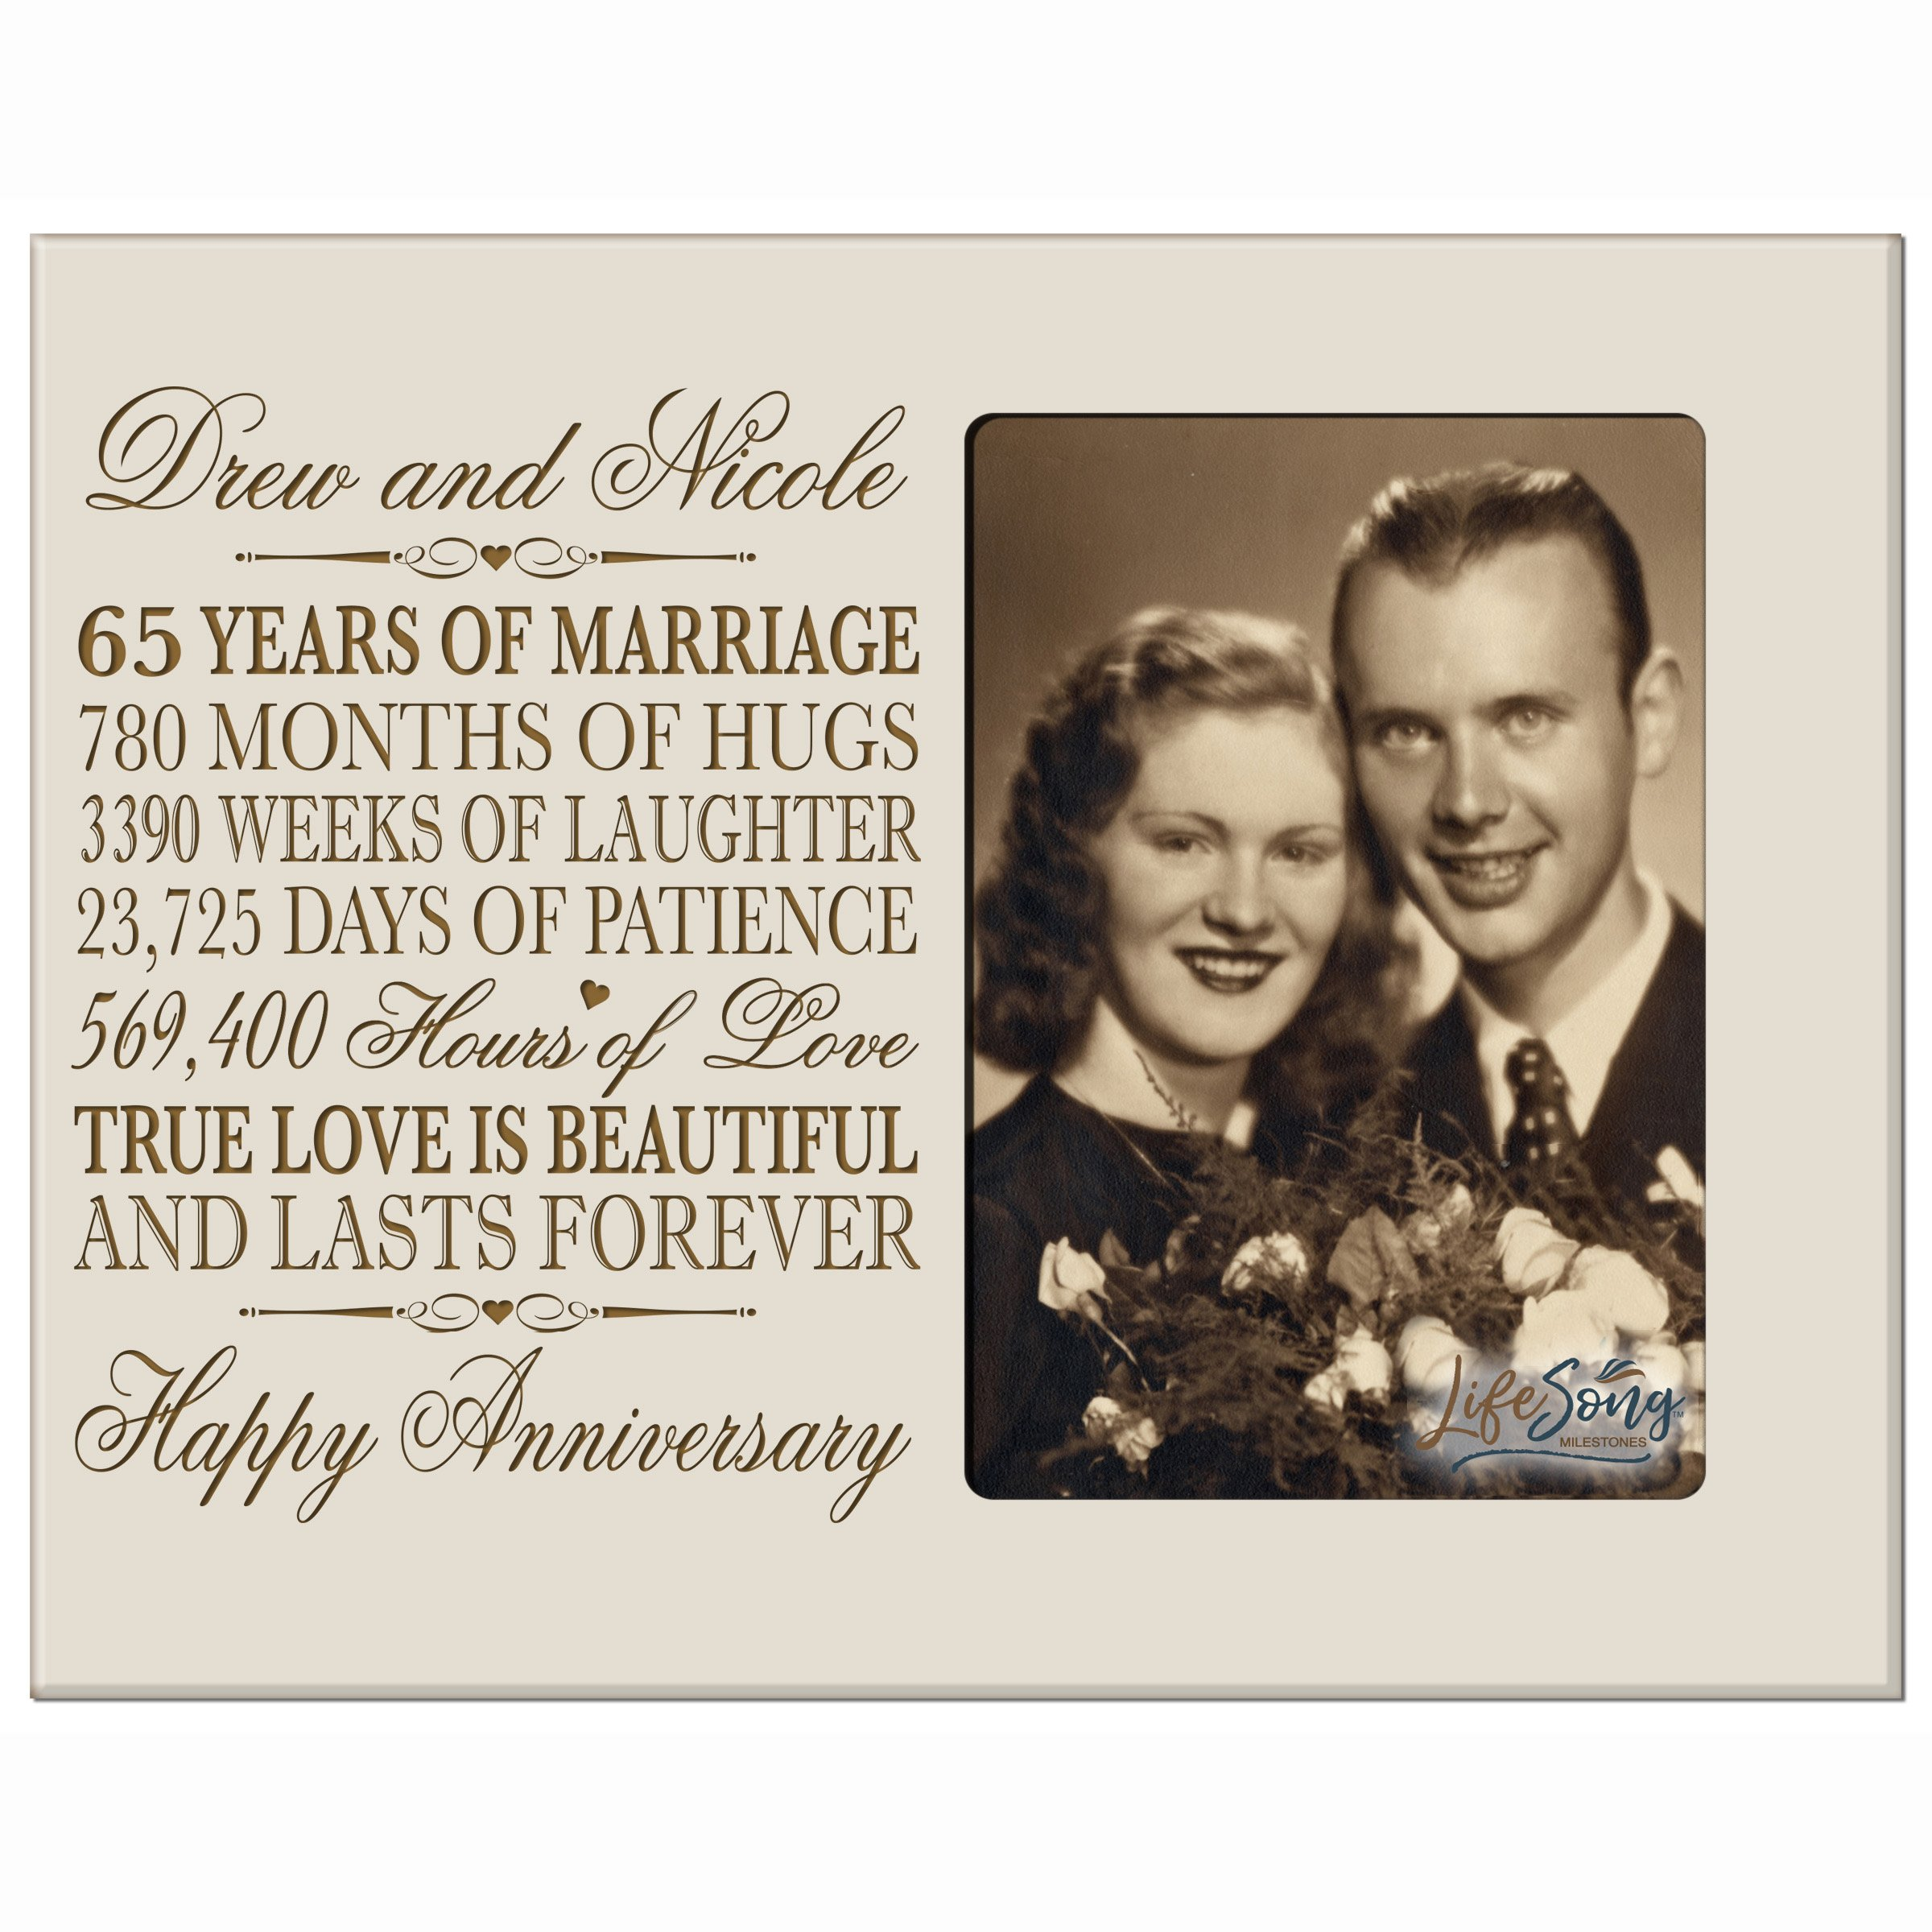 LifeSong Milestones Personalized 65th Year Wedding for Couple Custom Engraved 65th Wedding Frame Holds 1 4x6 Photo 8'' H X 10'' W (Ivory) by LifeSong Milestones